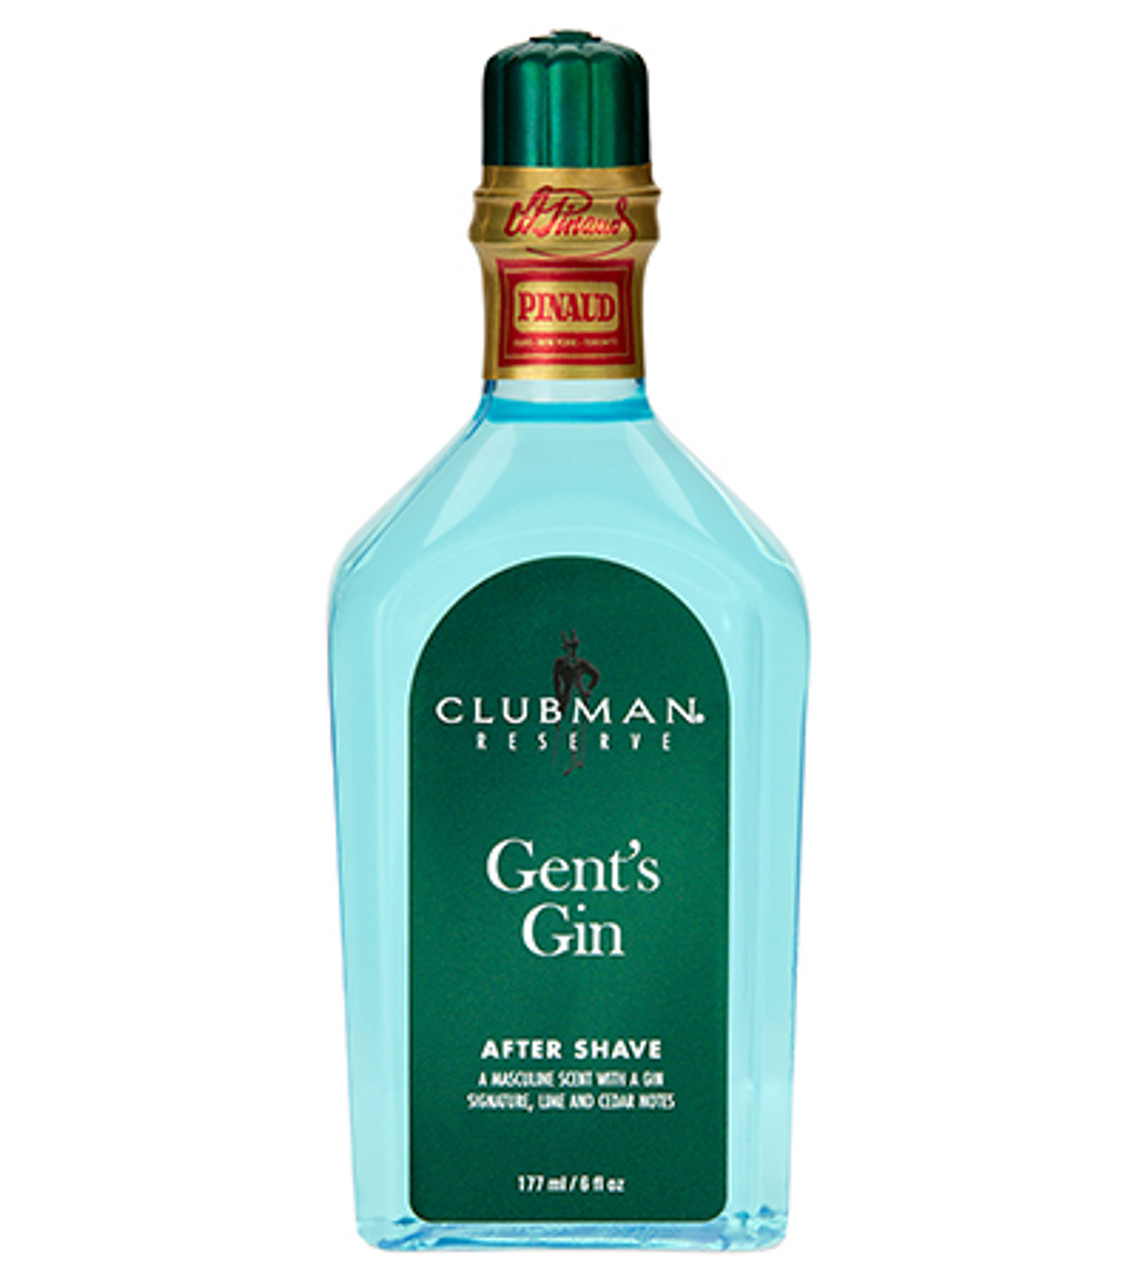 Clubman Gent's Gin Aftershave 6oz.